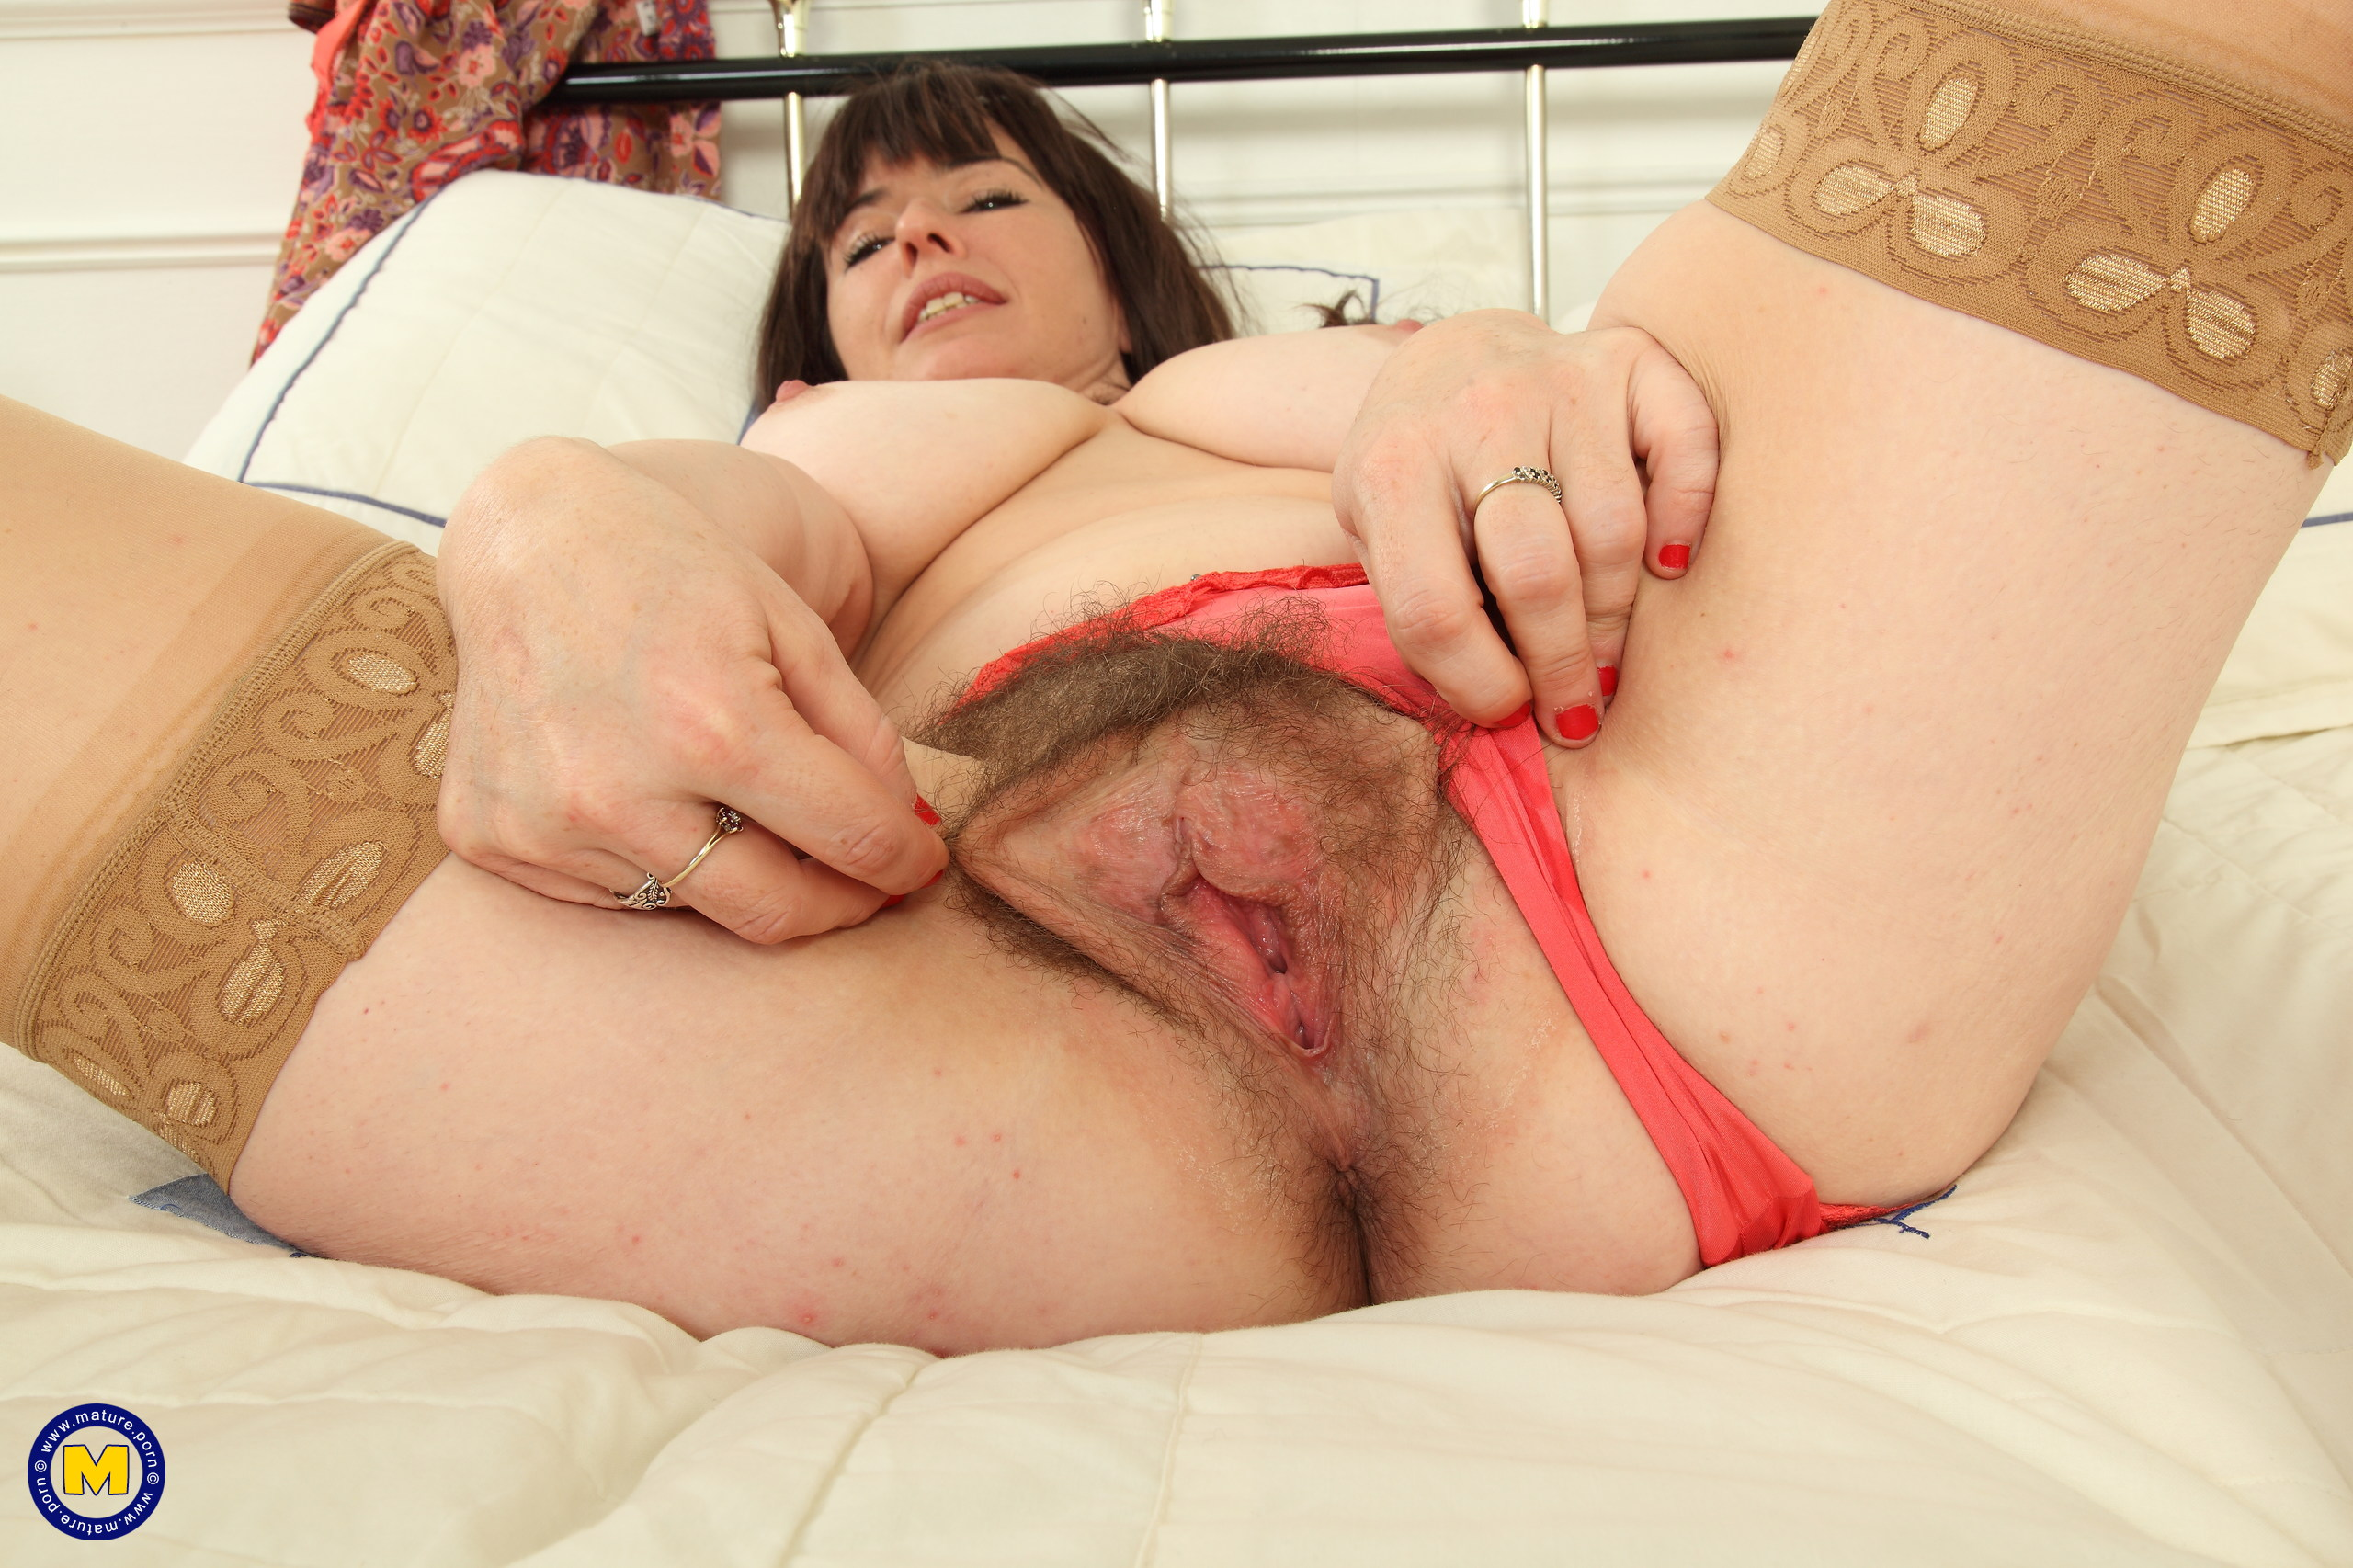 Hairy housewife from the UK getting frisky in bed – UK ...